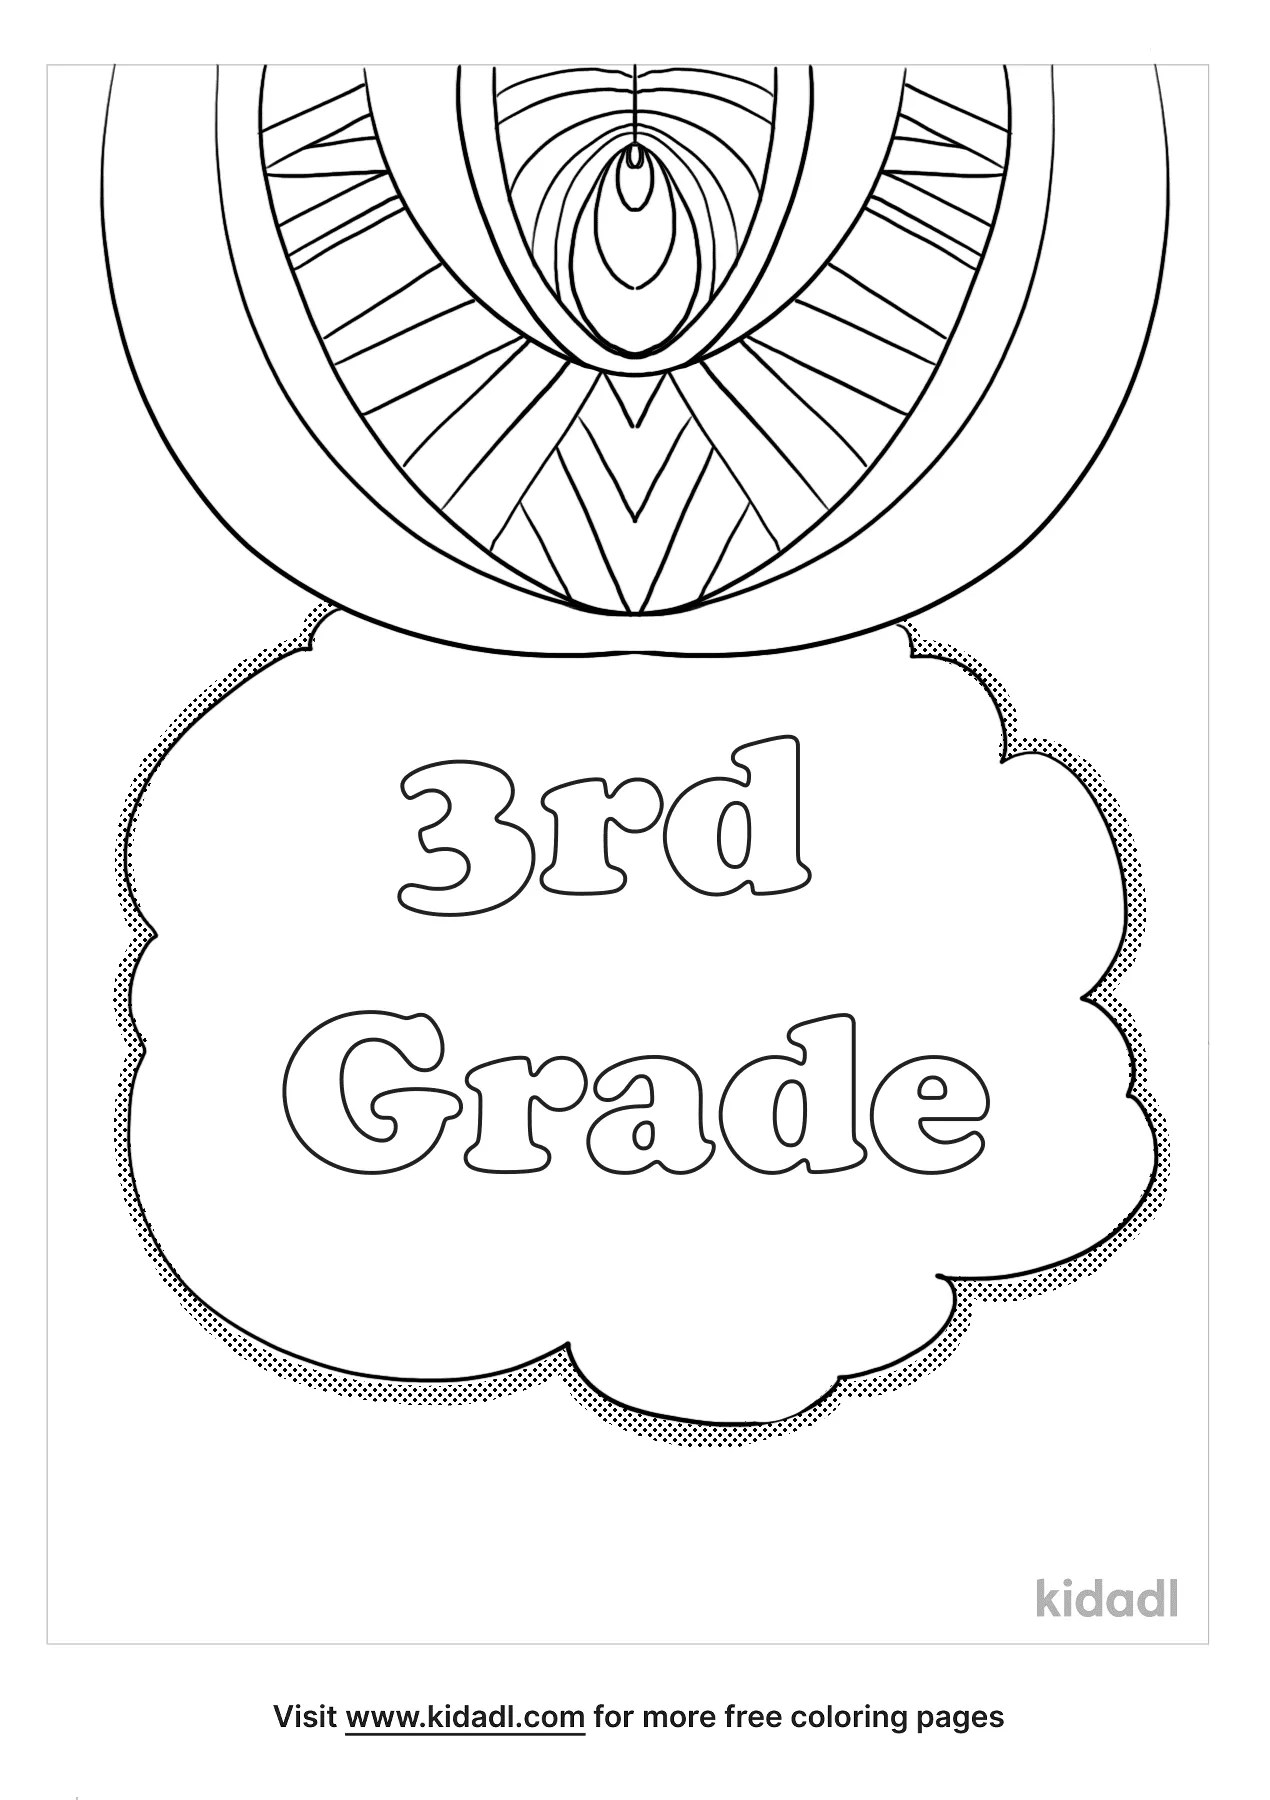 hight resolution of 3rd Grade Coloring Pages   Free School Coloring Pages   Kidadl